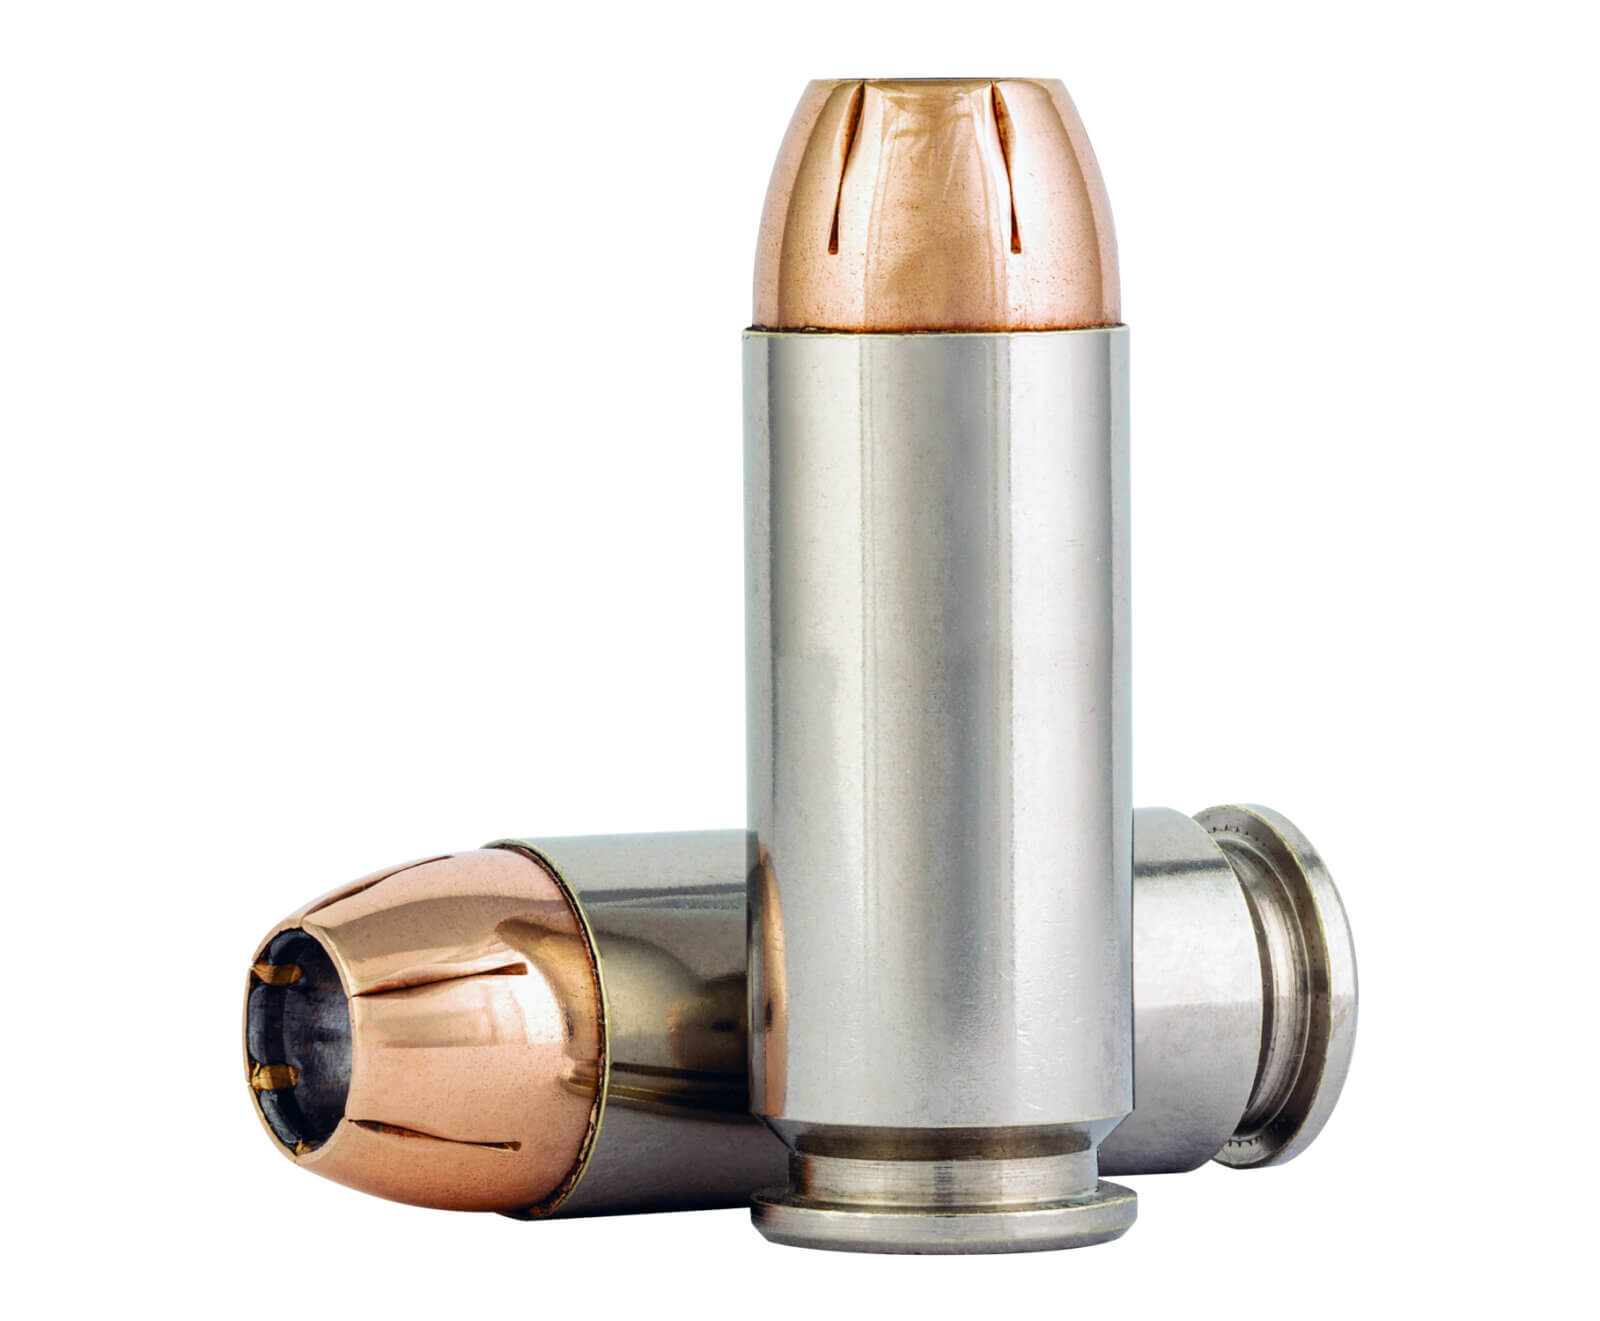 10mm Punch self defense ammo by Federal